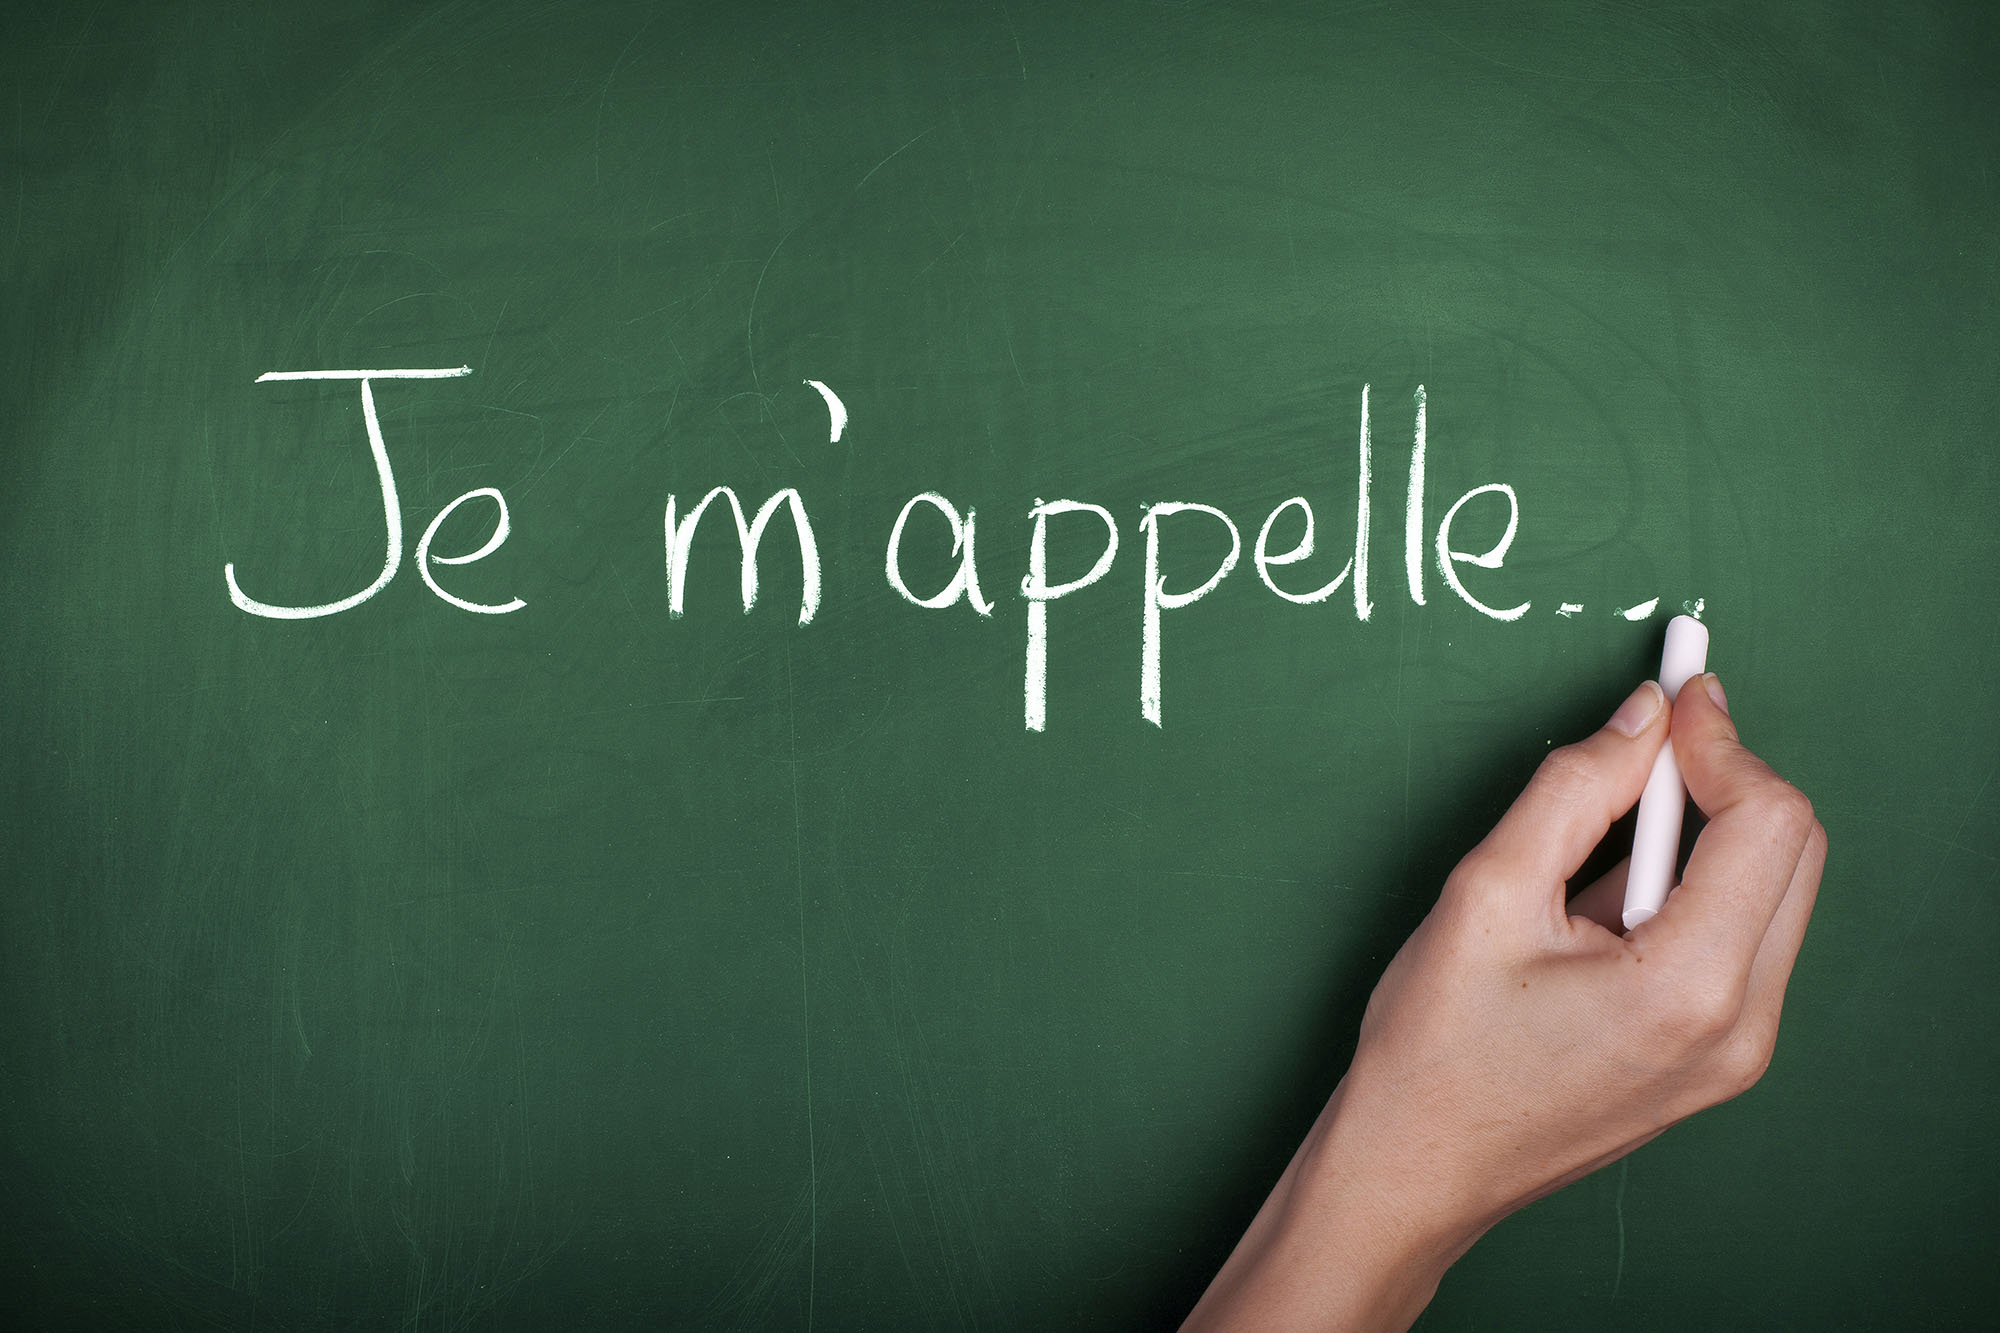 education in french algeria an essay on cultural conflict